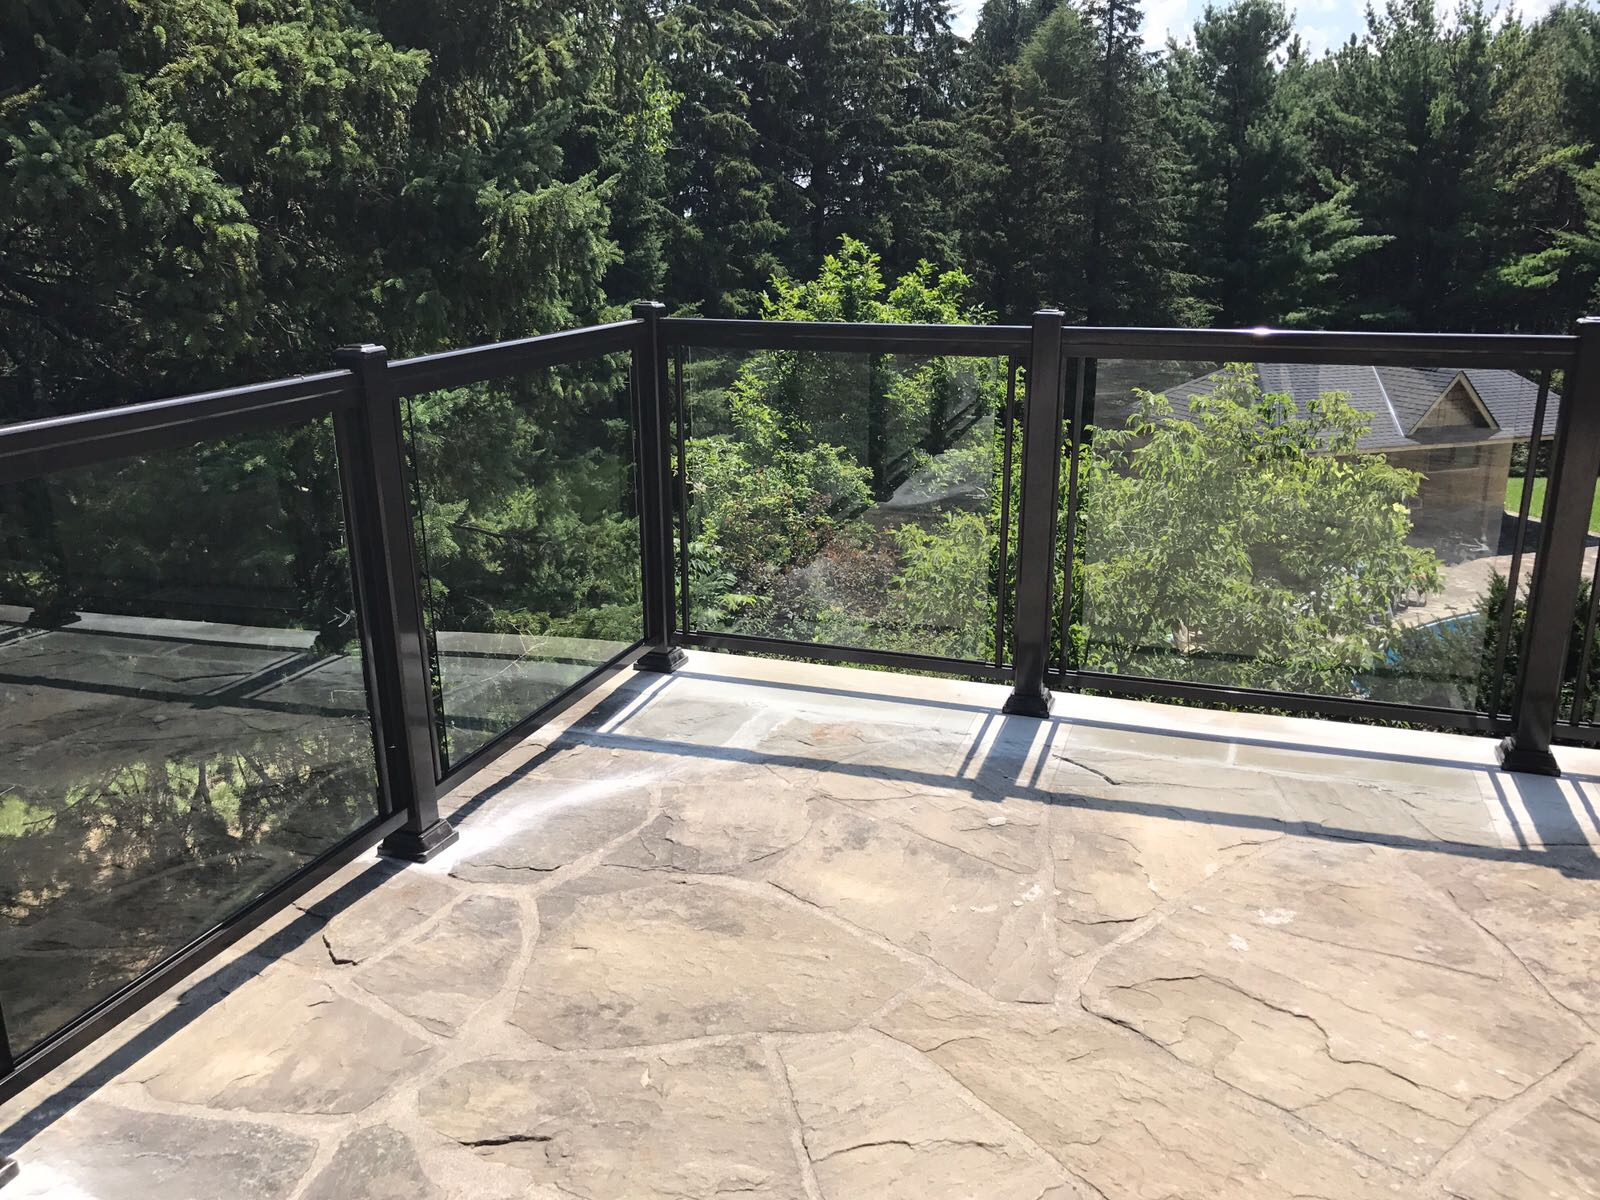 EXTERIOR GLASS RAILINGS